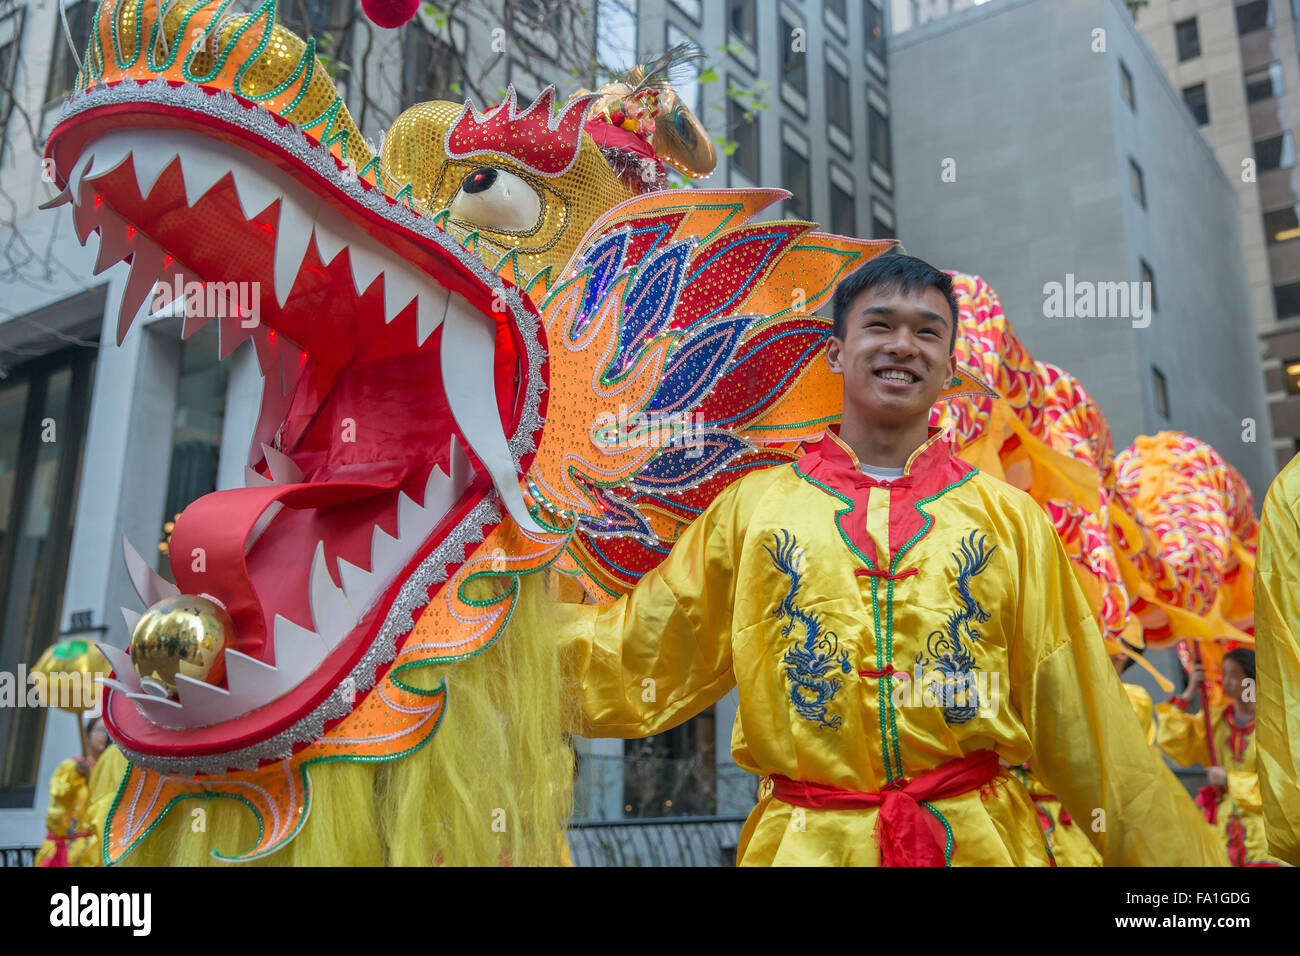 Dragon handler dressed in costume at San Francisco Chinese New Year parade. - Stock Image